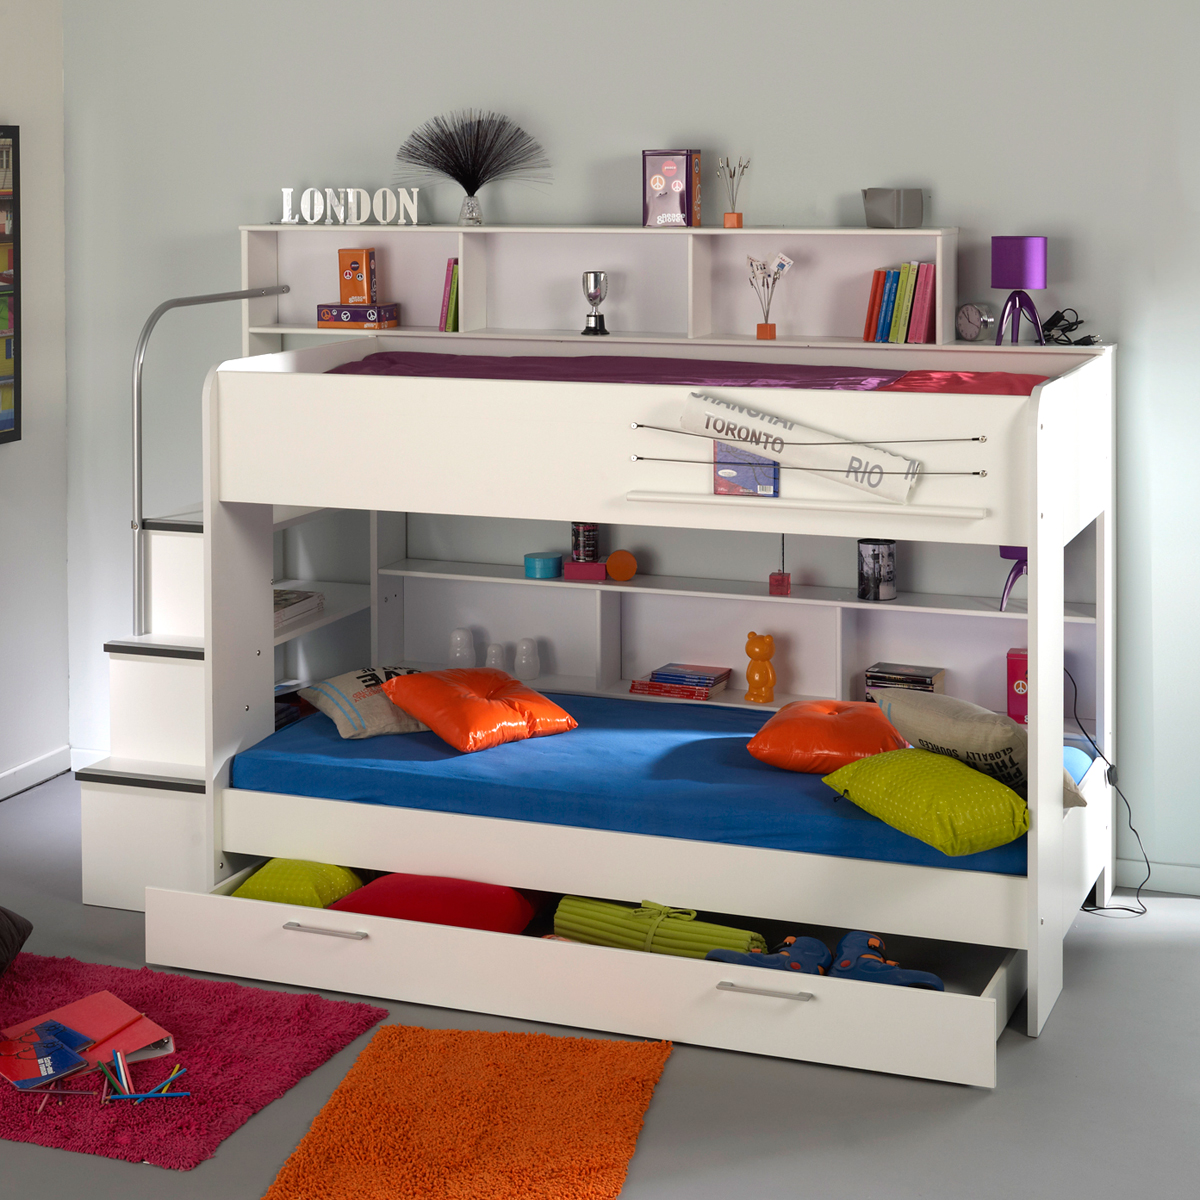 etagenbett bibop hochbett buche oder wei dekor mit treppe b cherregal stauraum ebay. Black Bedroom Furniture Sets. Home Design Ideas